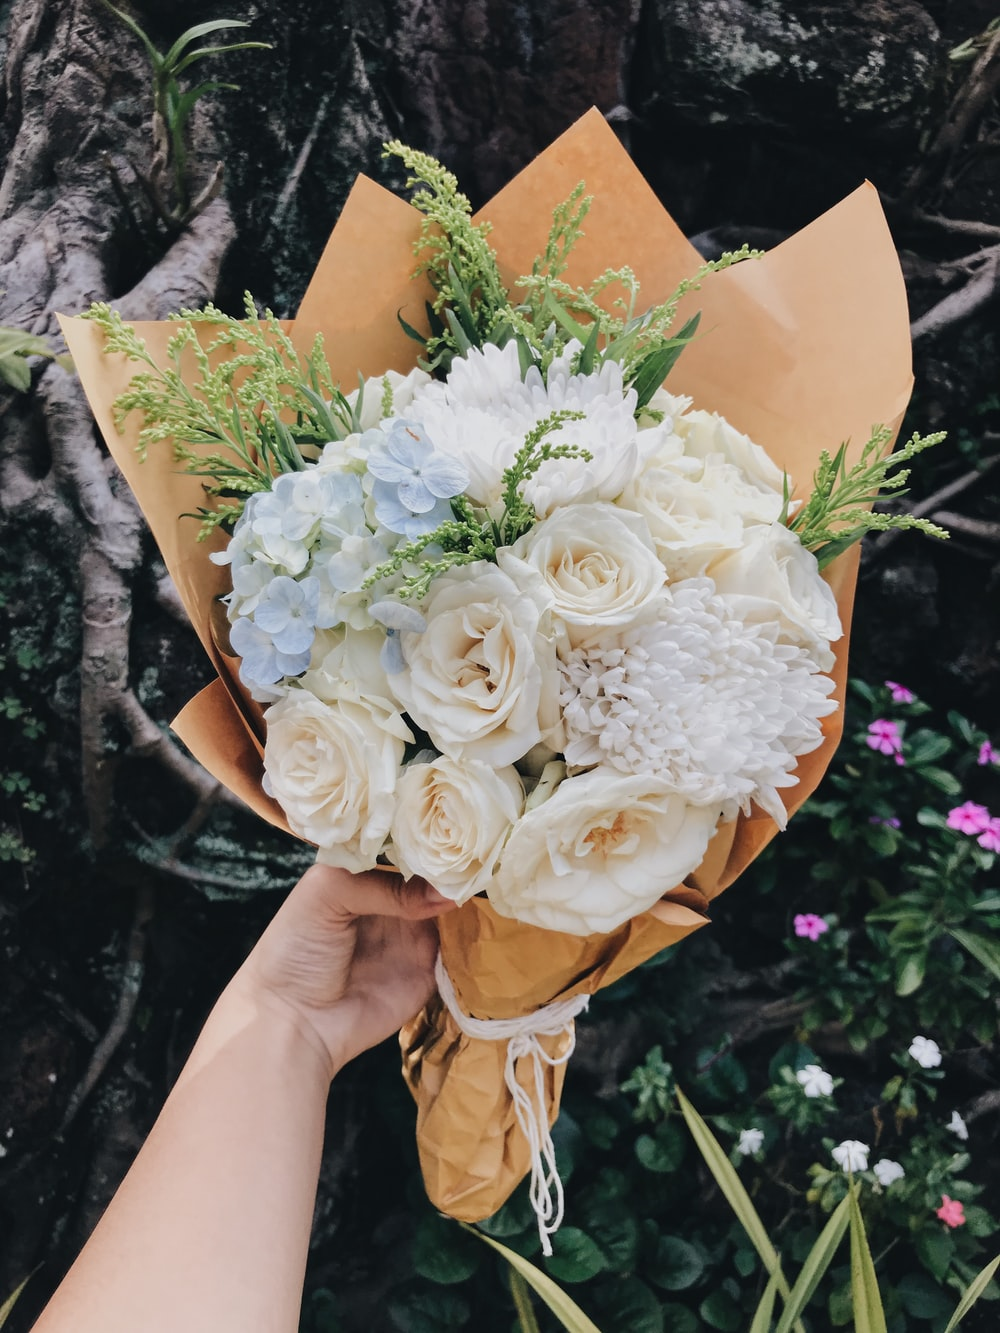 Flowers Bouquets Pictures | Download Free Images on Unsplash